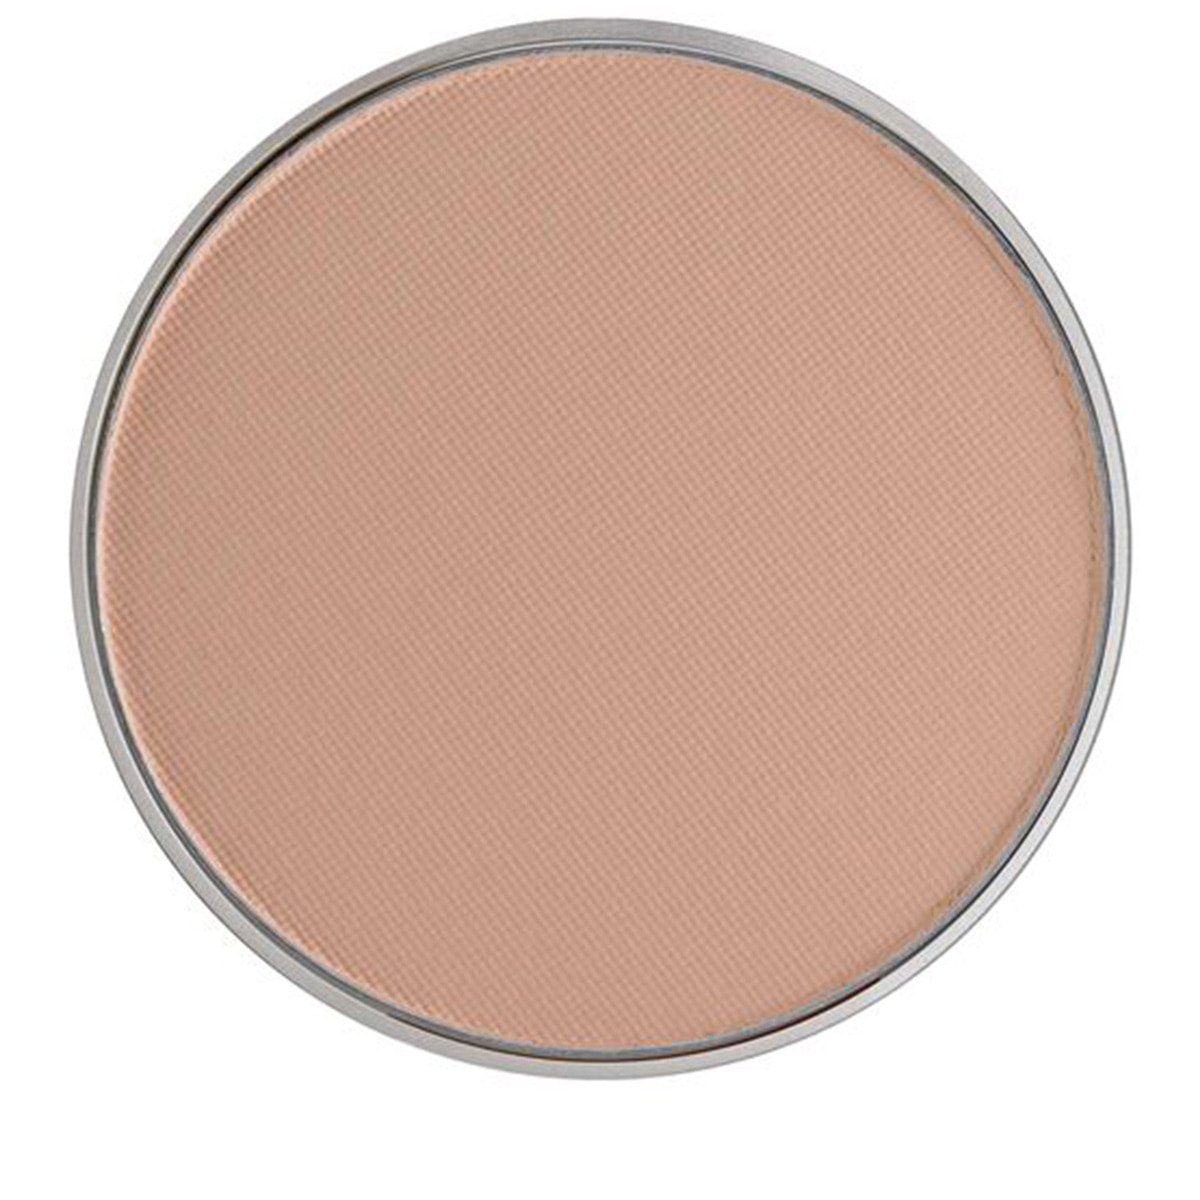 Hydra mineral compact foundation refill 70